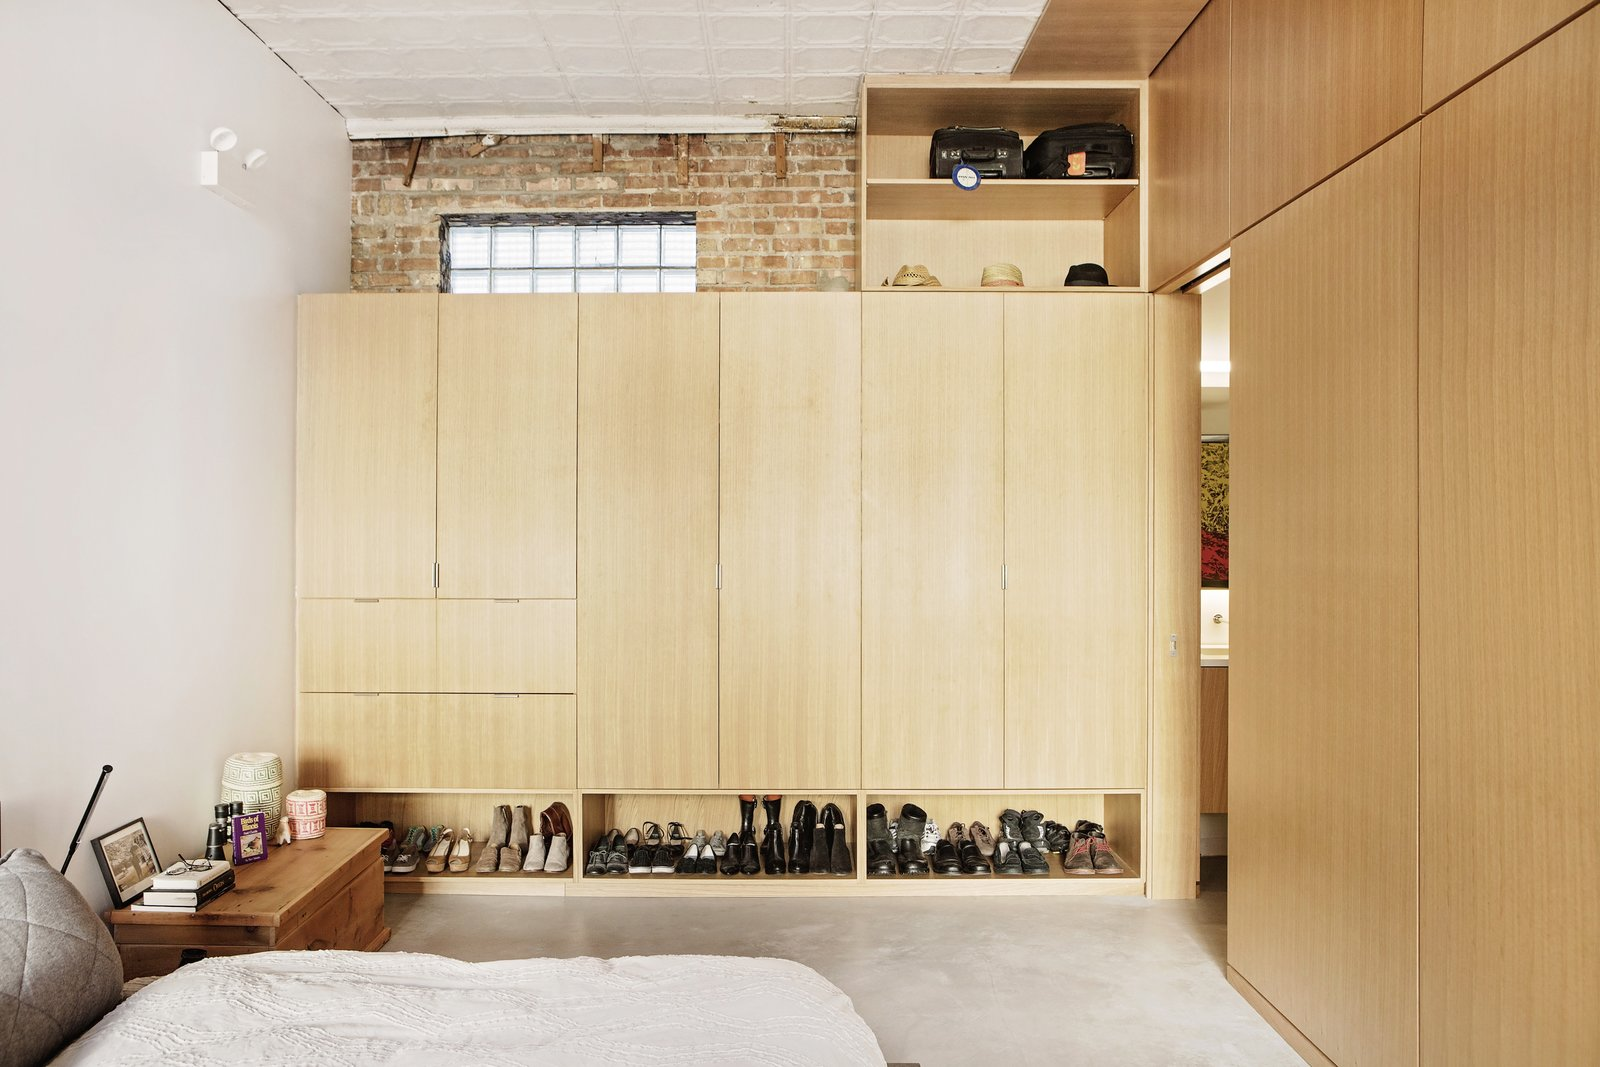 Bedroom, Wardrobe, Bed, Concrete, Storage, Night Stands, and Wall T  Bedroom Bed Concrete Wardrobe Photos from Before & After: A Rundown Bodega in Chicago Is Reimagined Into a Vibrant Live/Work Space